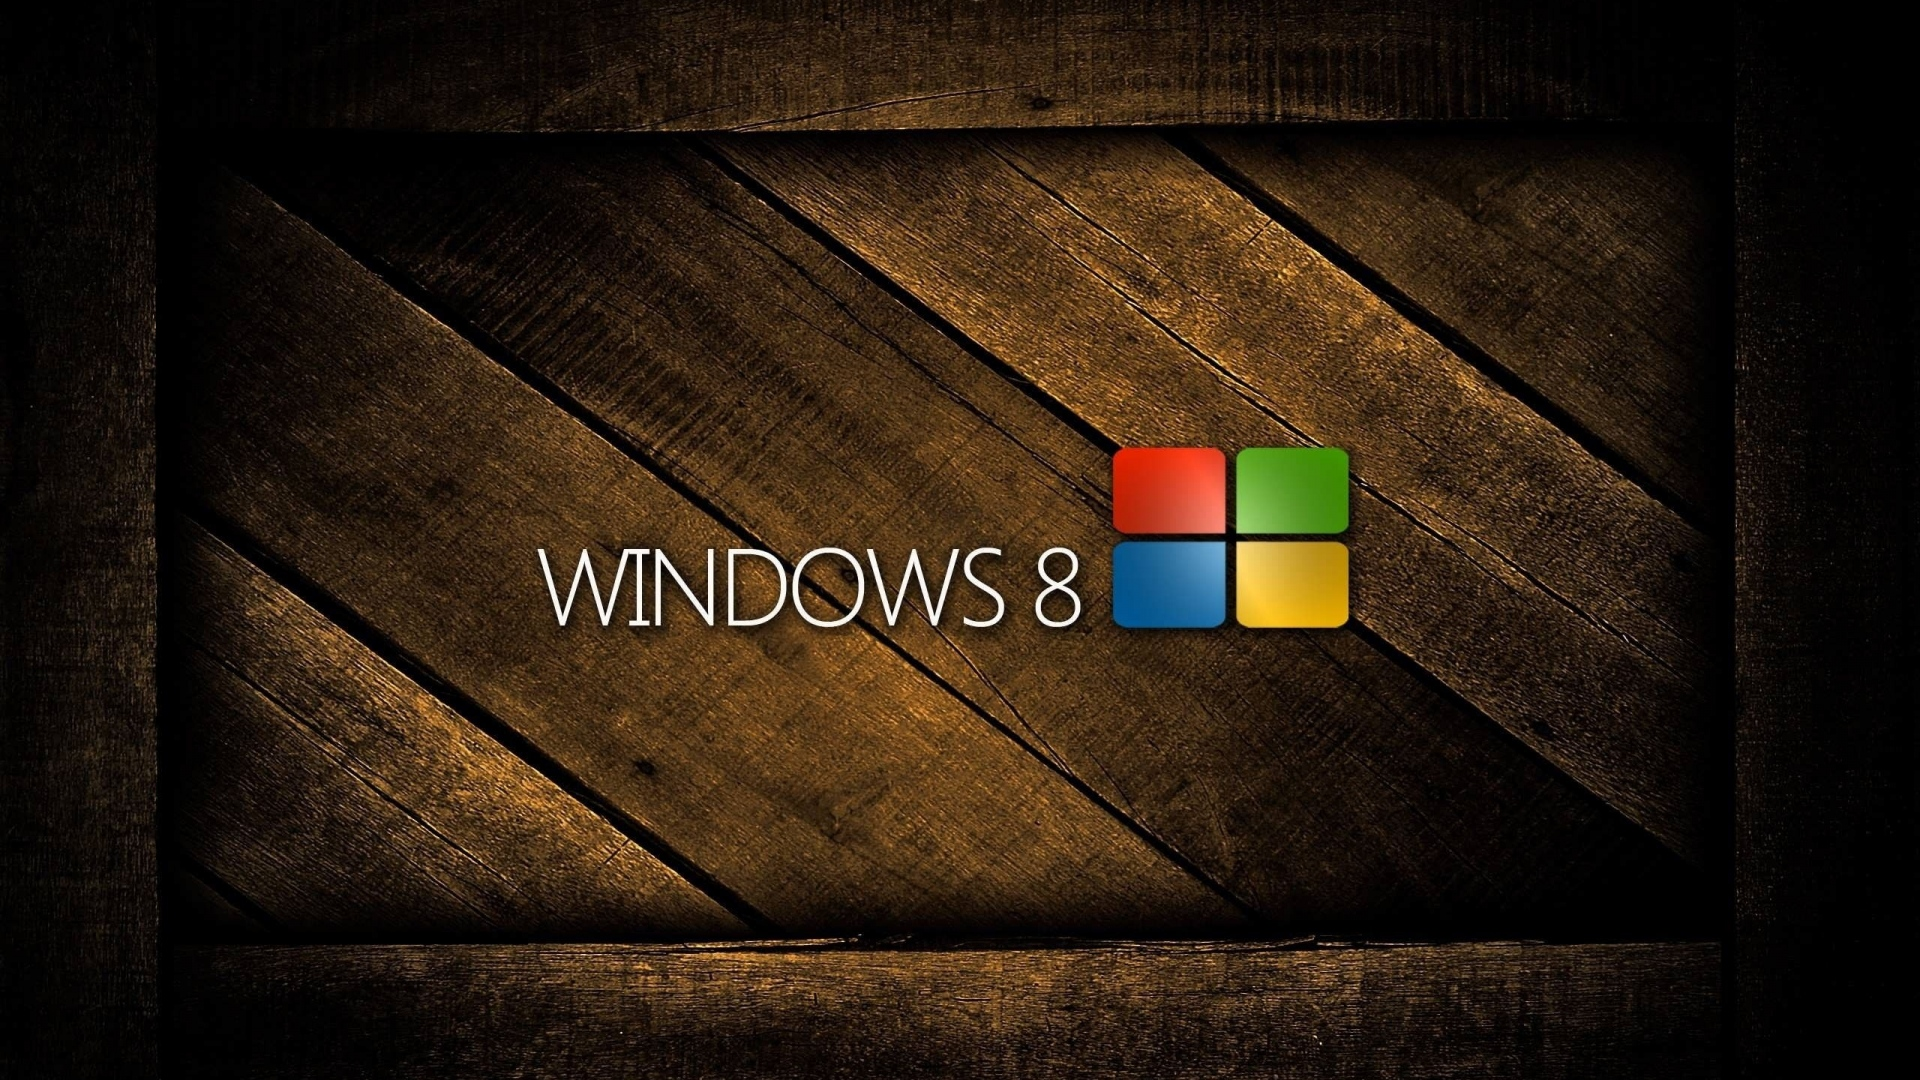 Windows 8 Wallpaper Hd 1080p Free Download Sf Wallpaper